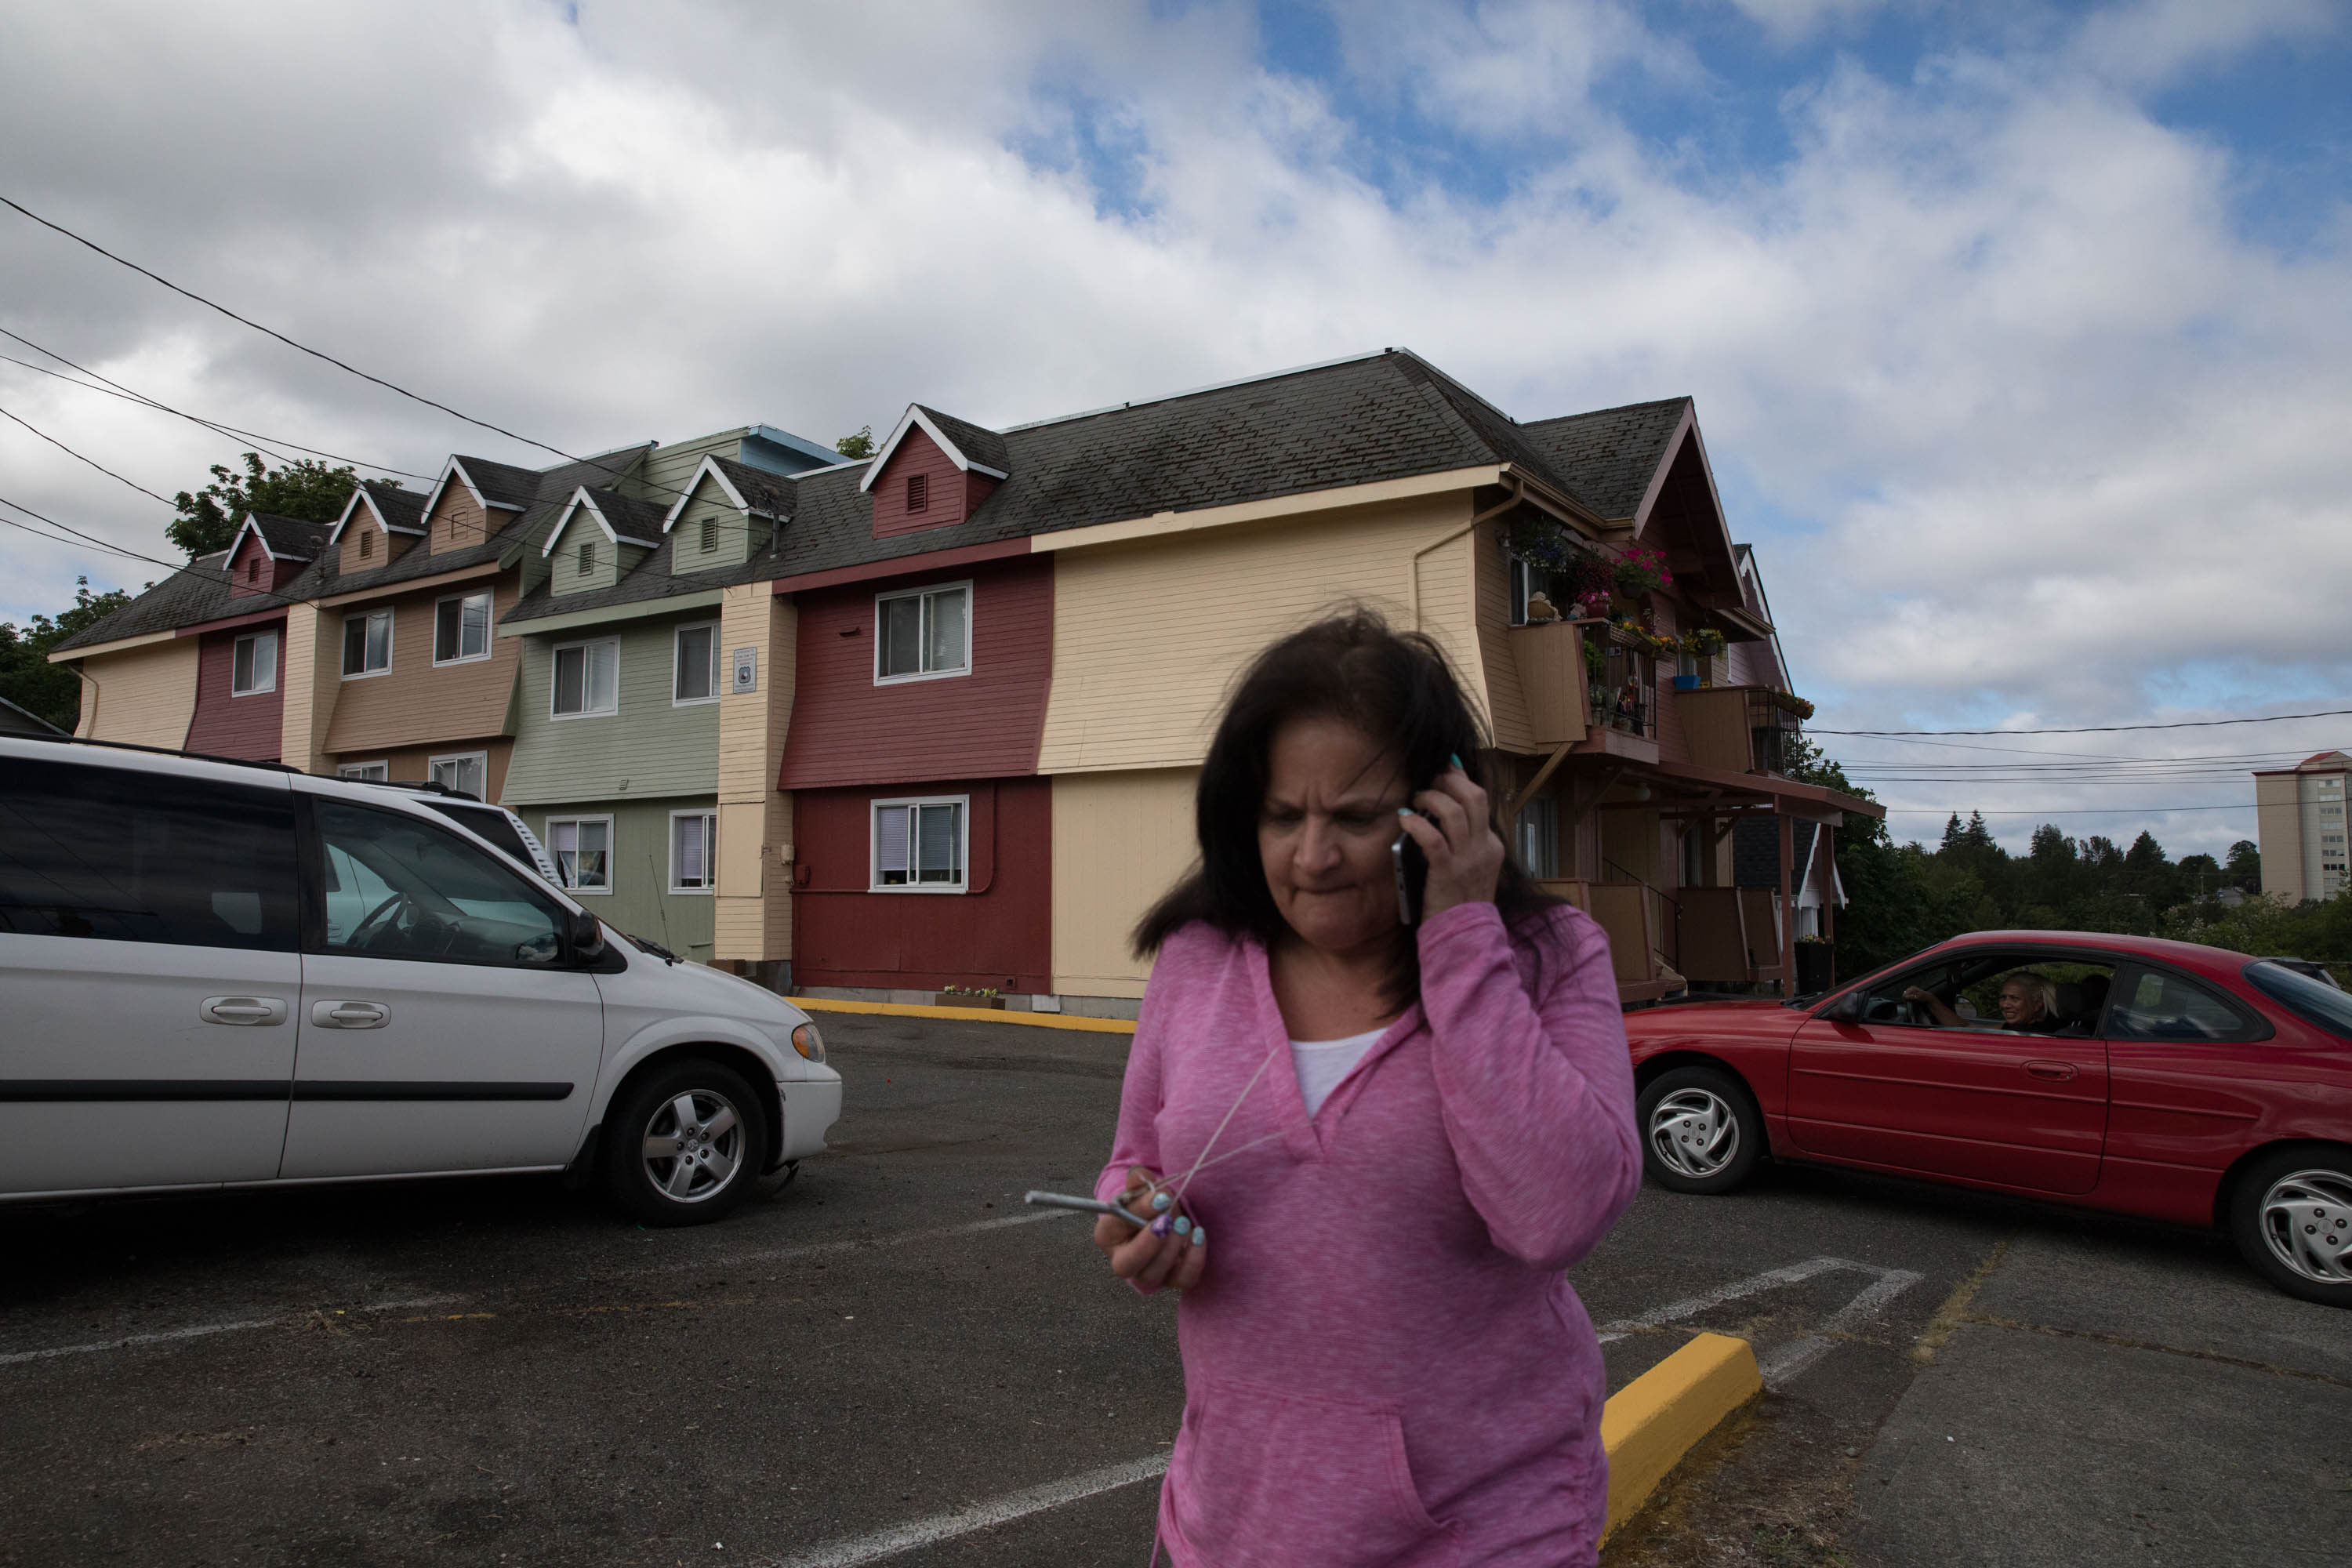 Tammi Lynn, a landlord, rents her apartments to those on the verge of homelessness. Credit: Matt M. McKnight/Cascade Public Media